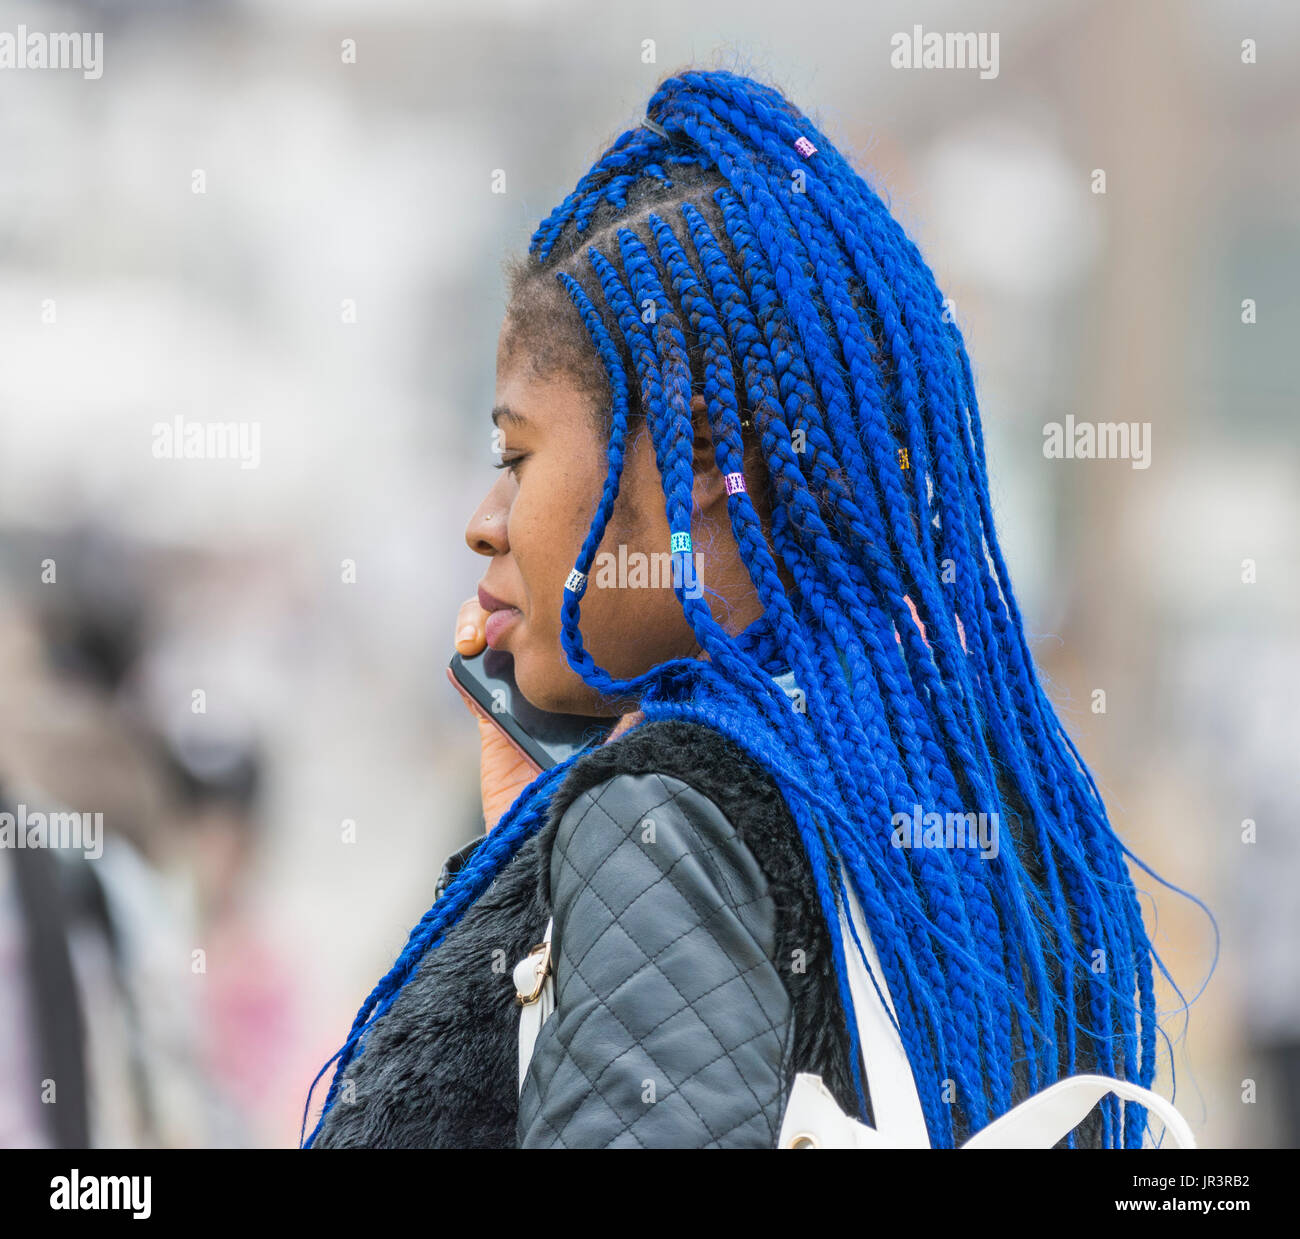 Young black woman with braided blue hair. - Stock Image